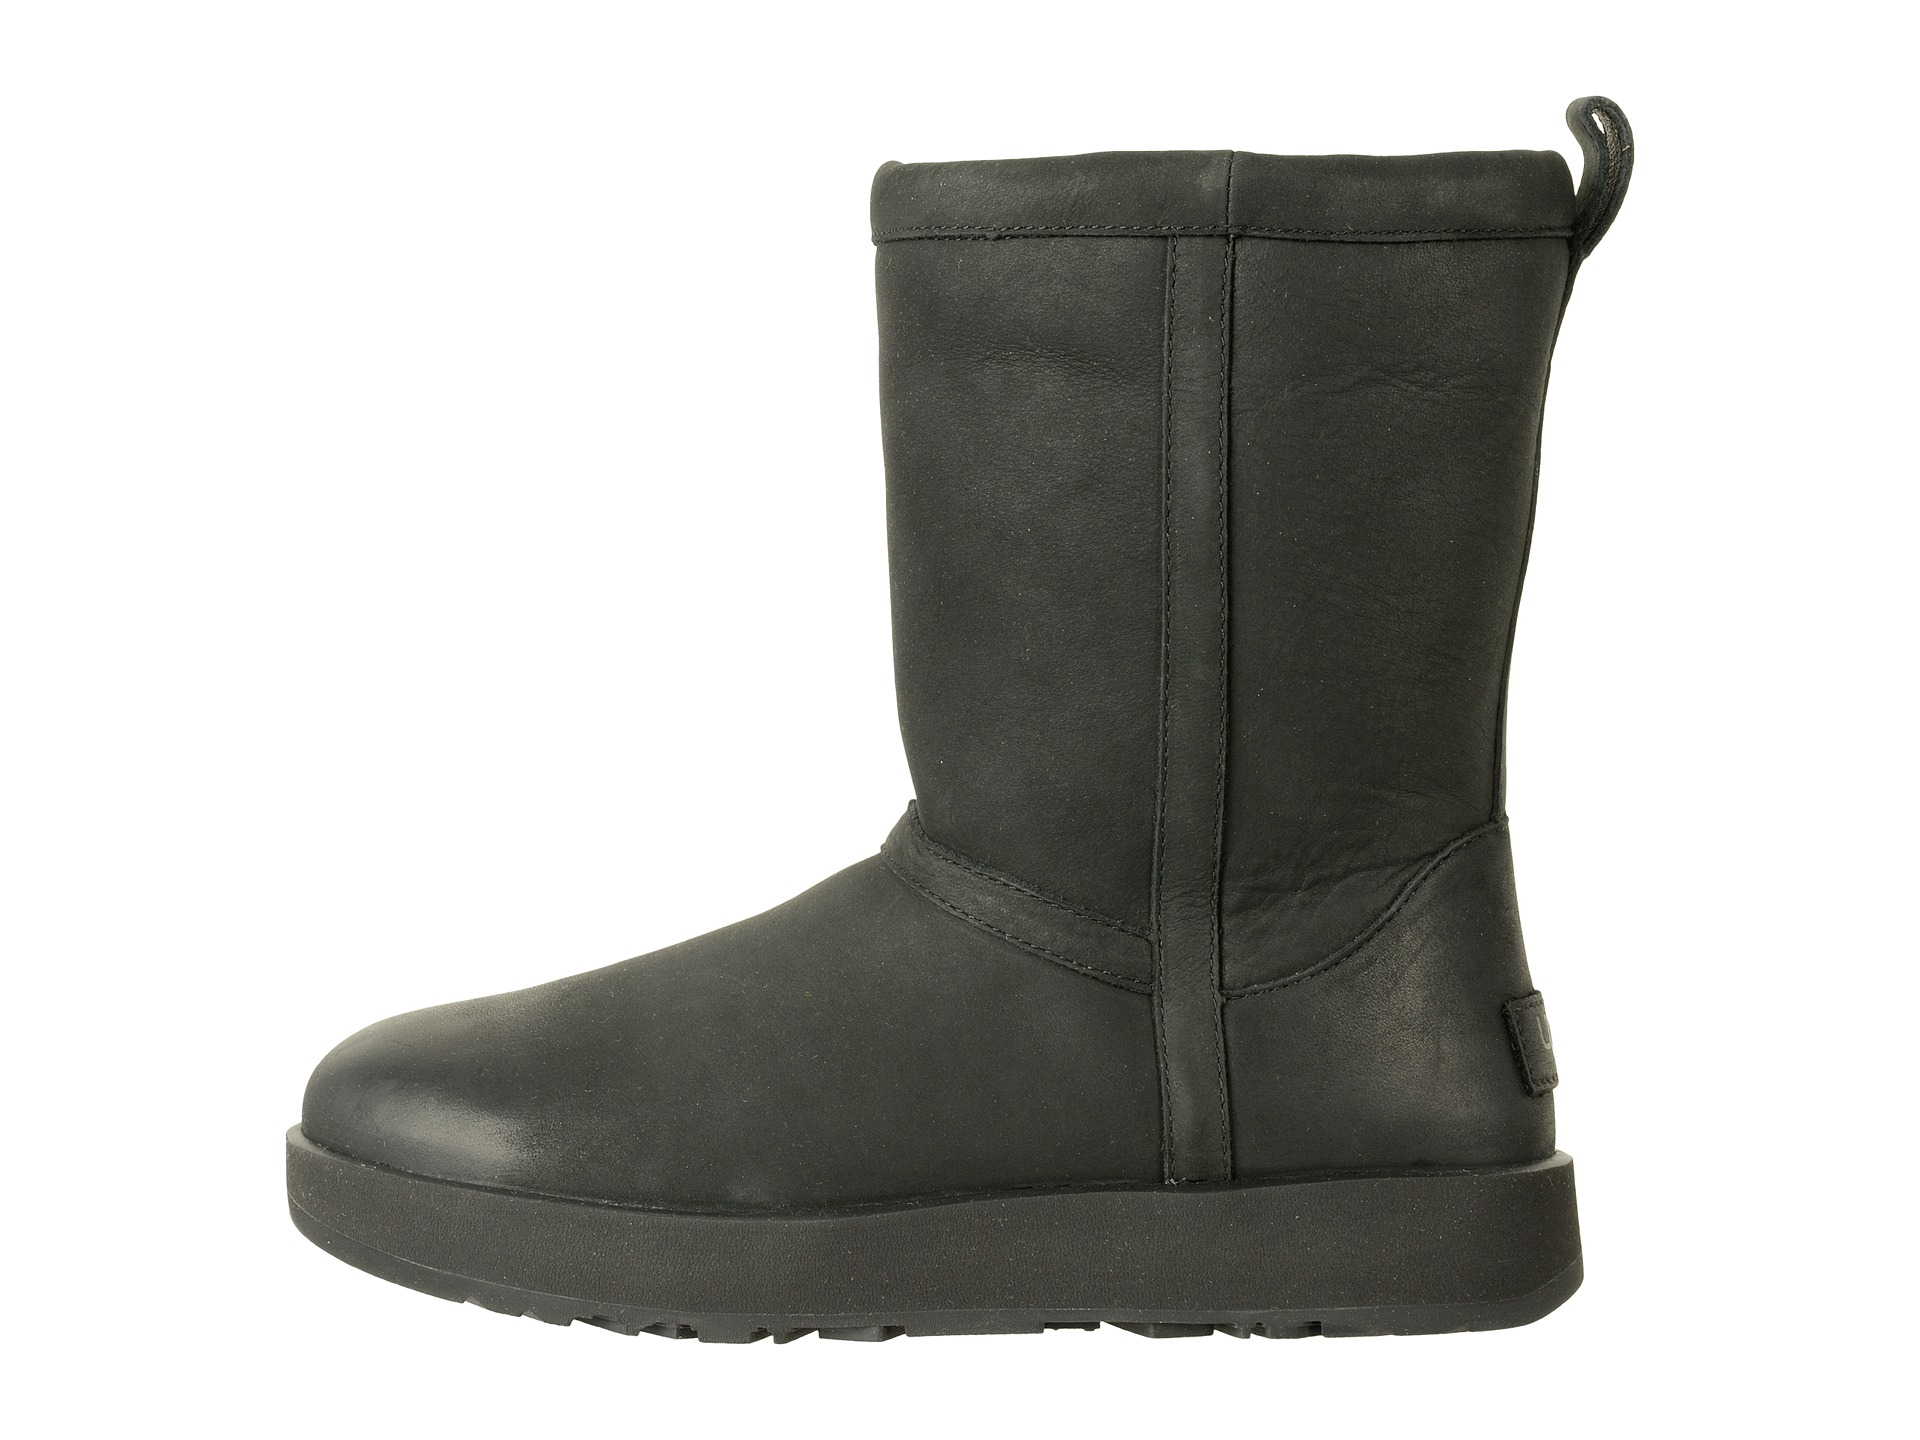 UGG Classic Short L Waterproof at Zappos.com